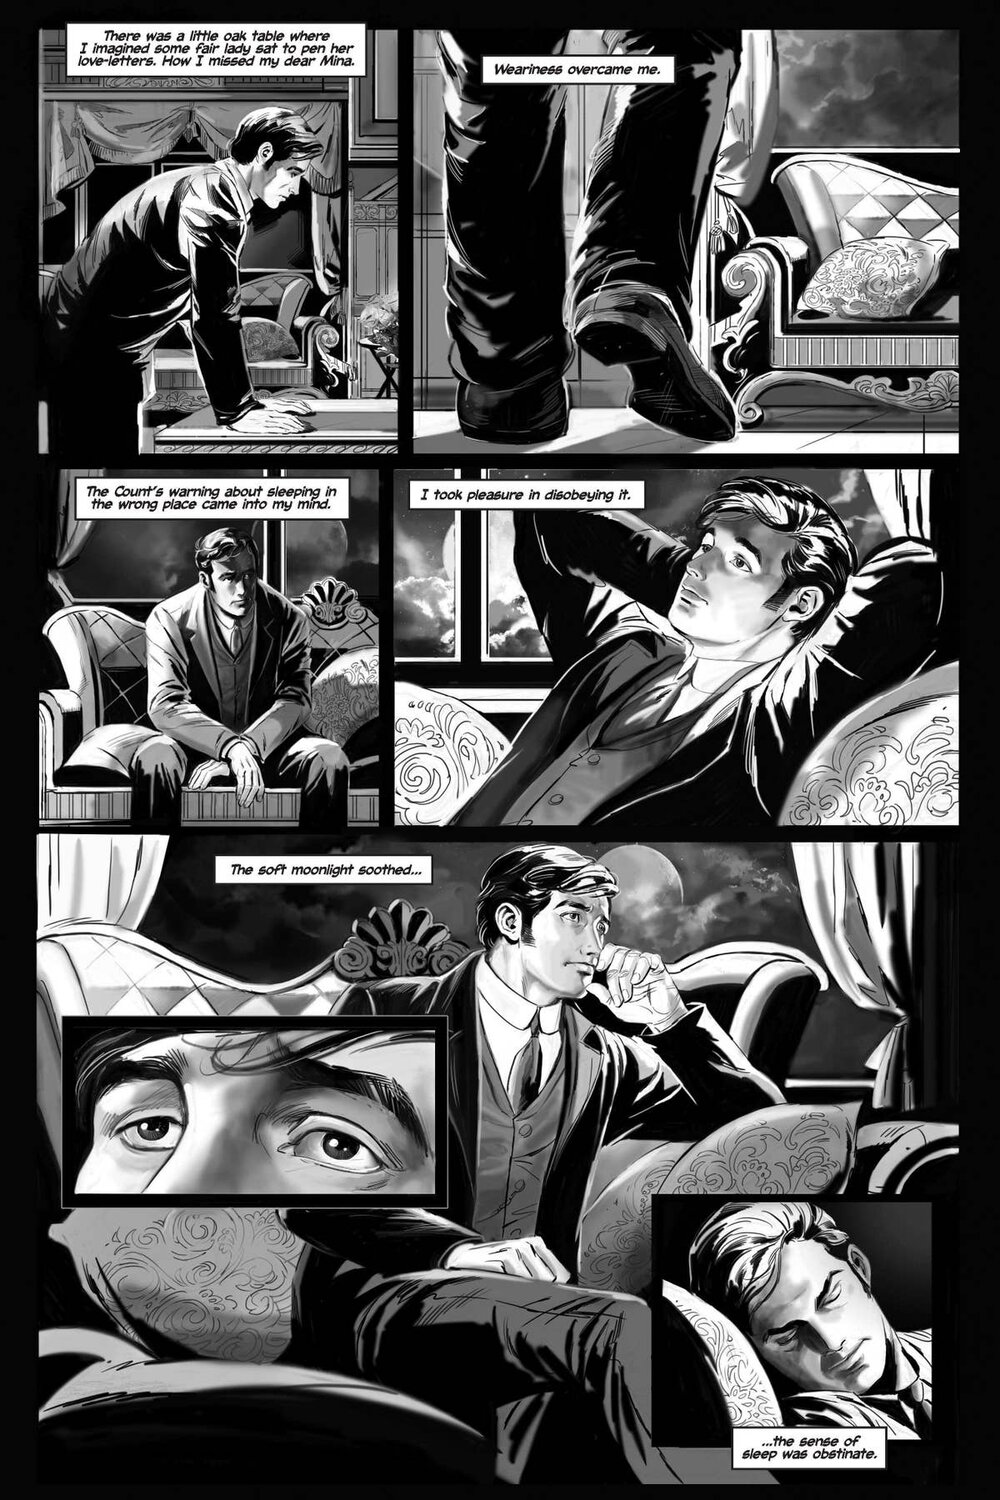 dracula-preview-page-3.jpg